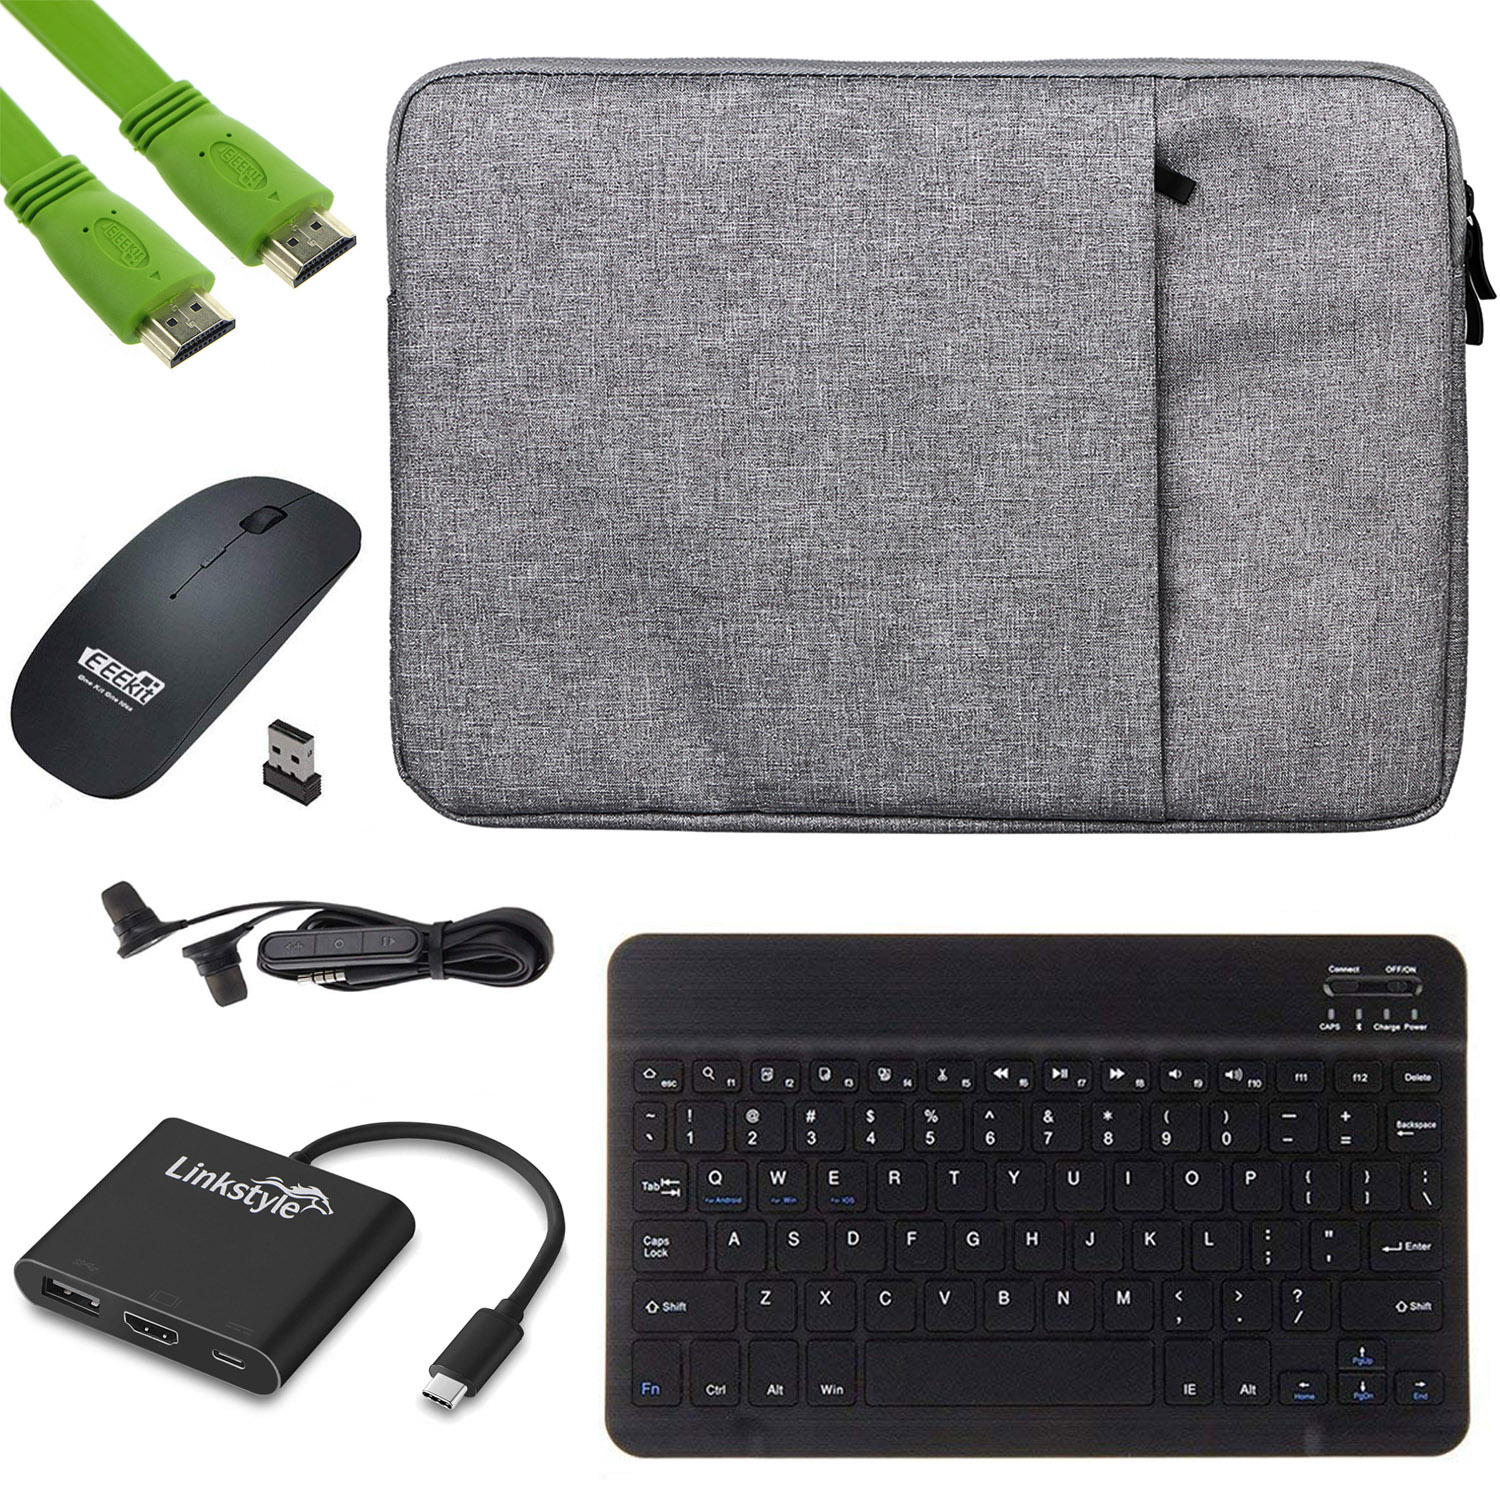 11 sleeve carry case usb c to hdmi usb 3 0 pd hub adapter bluetooth wireless keyboard mouse. Black Bedroom Furniture Sets. Home Design Ideas